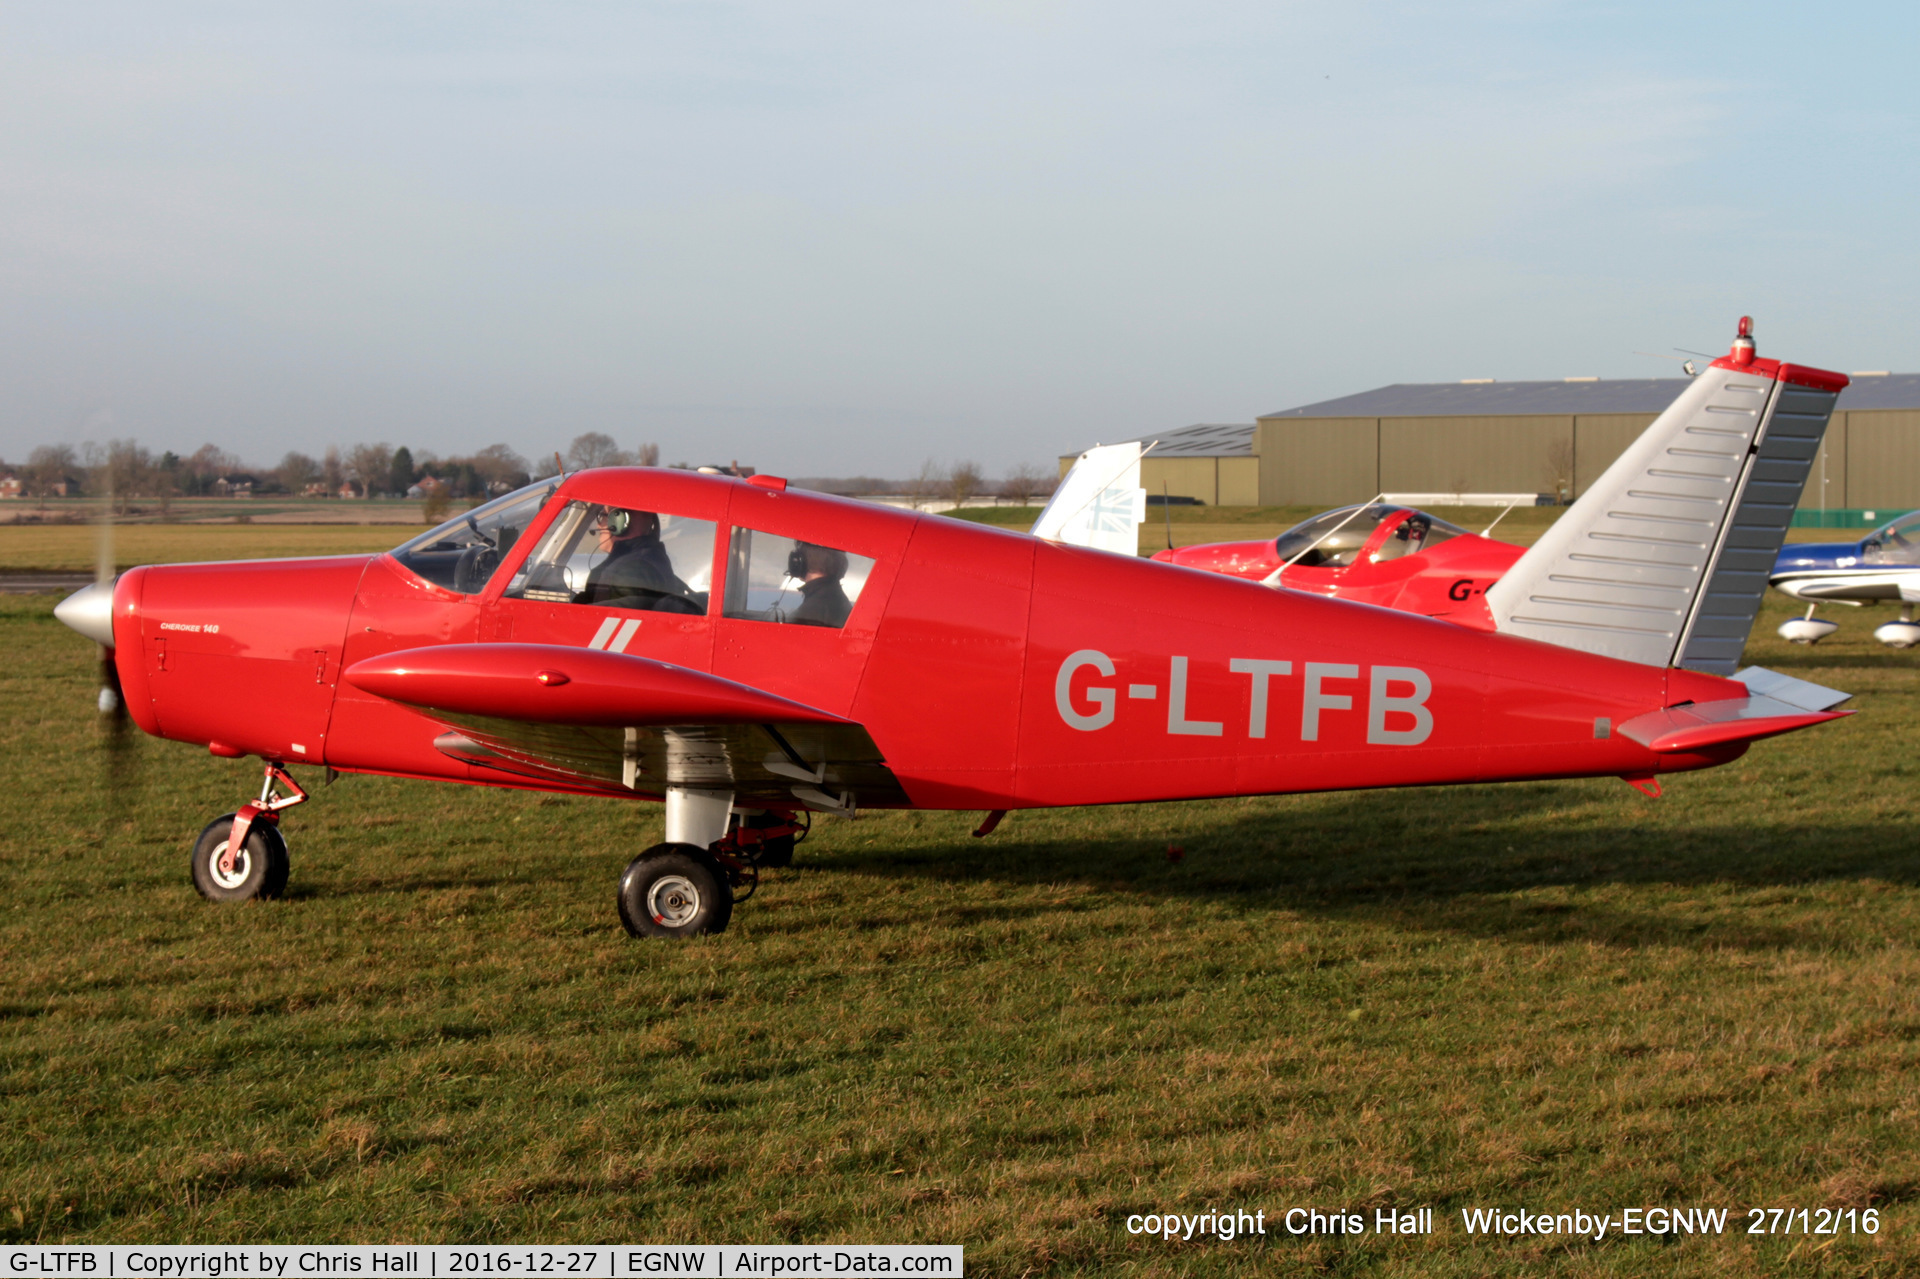 G-LTFB, 1967 Piper PA-28-140 Cherokee C/N 28-23343, at the Wickenby